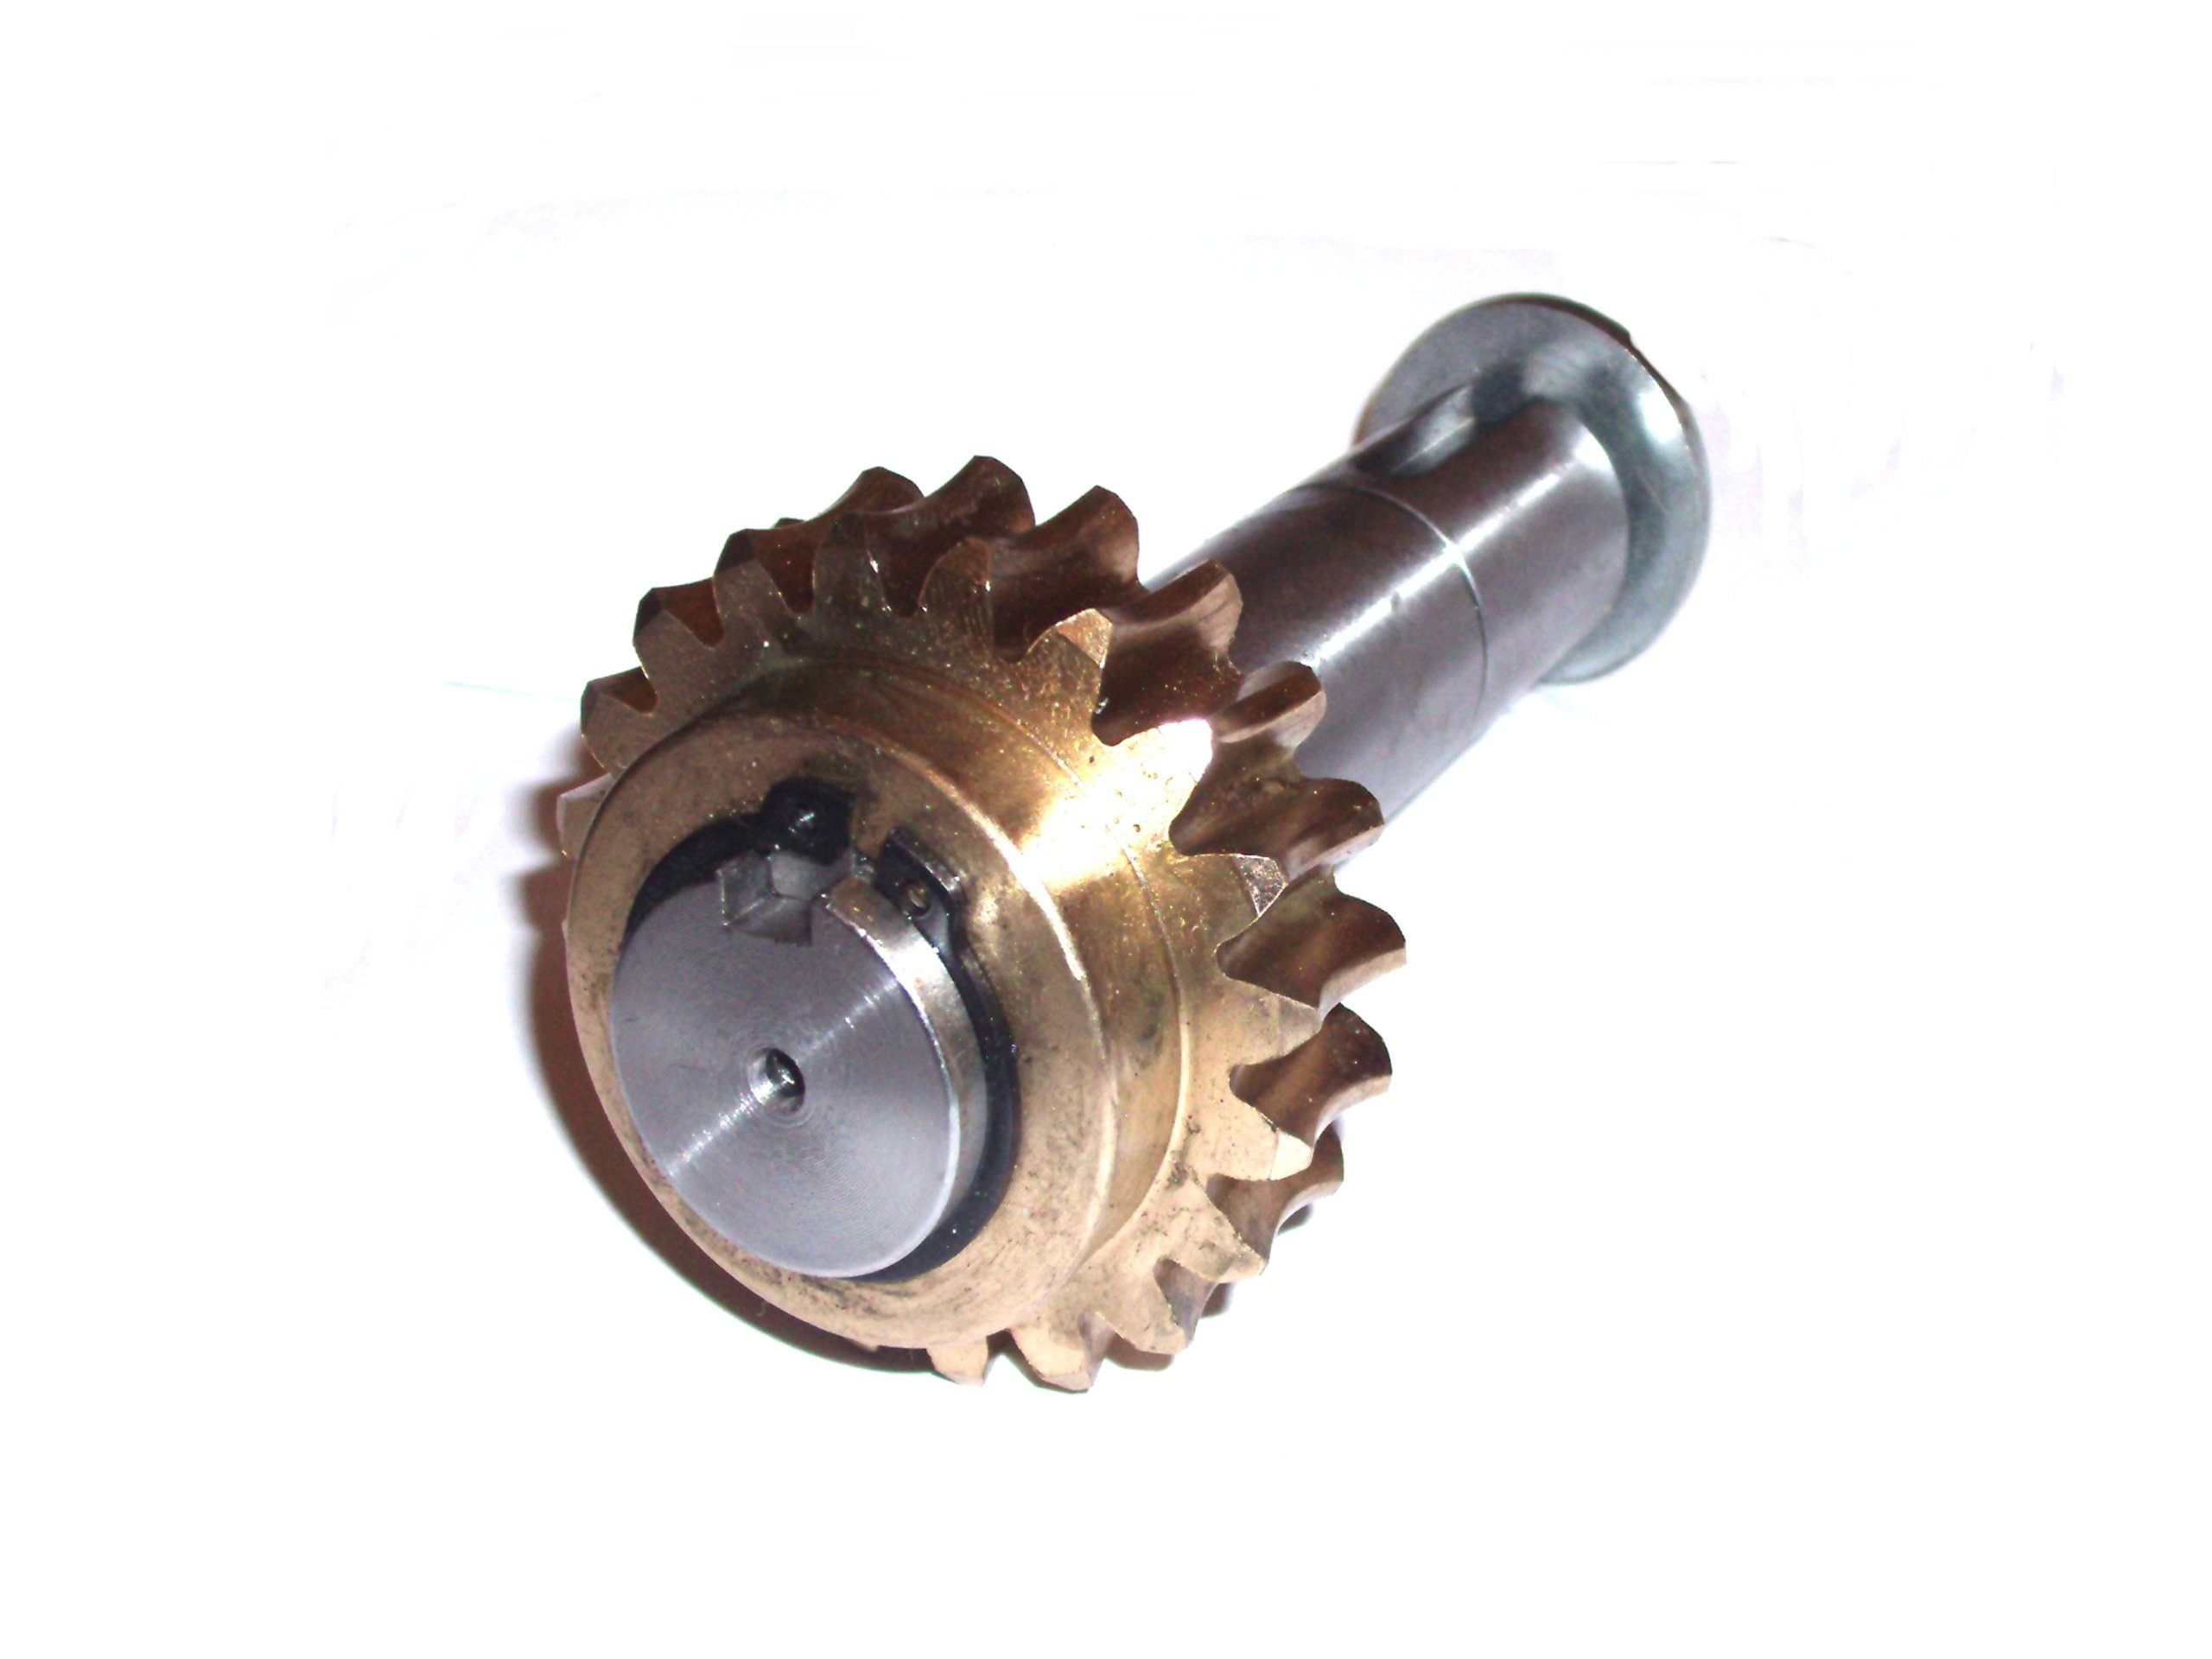 BRONZE GEAR FOR 7 X 12 METAL CUTTING BAND SAWS